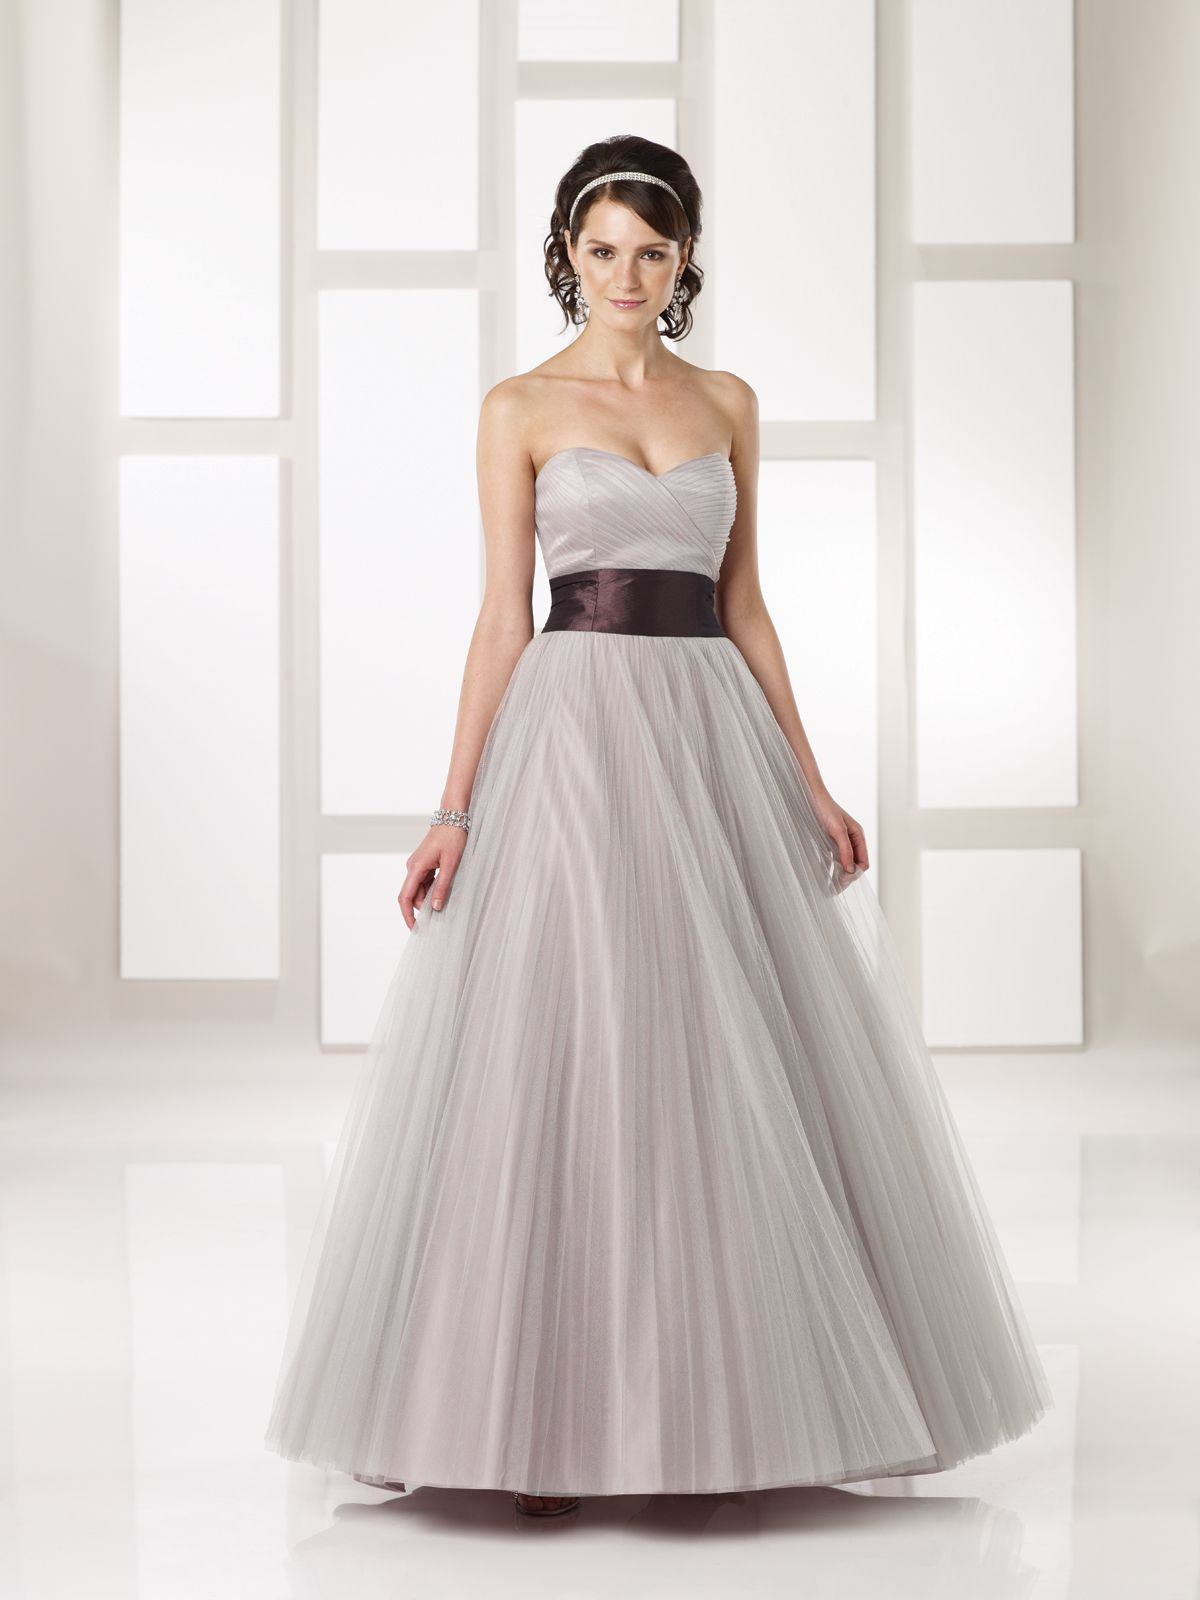 Tulle Over Satin Empire Dress